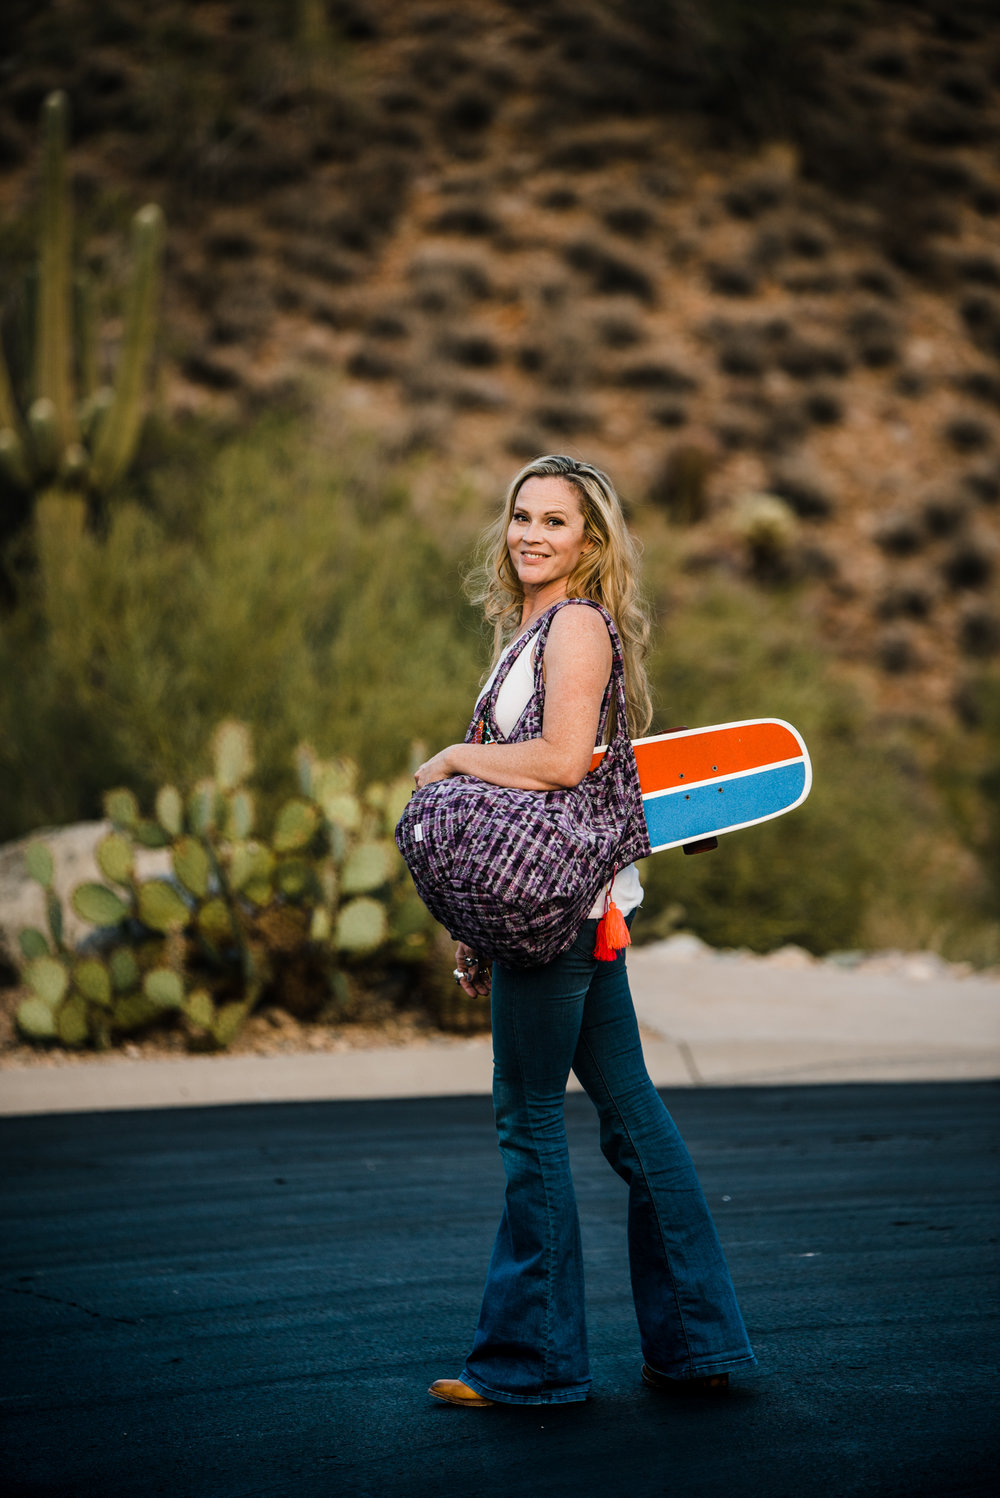 Arizona-love-hippie-momma-bags-boho-13.jpg